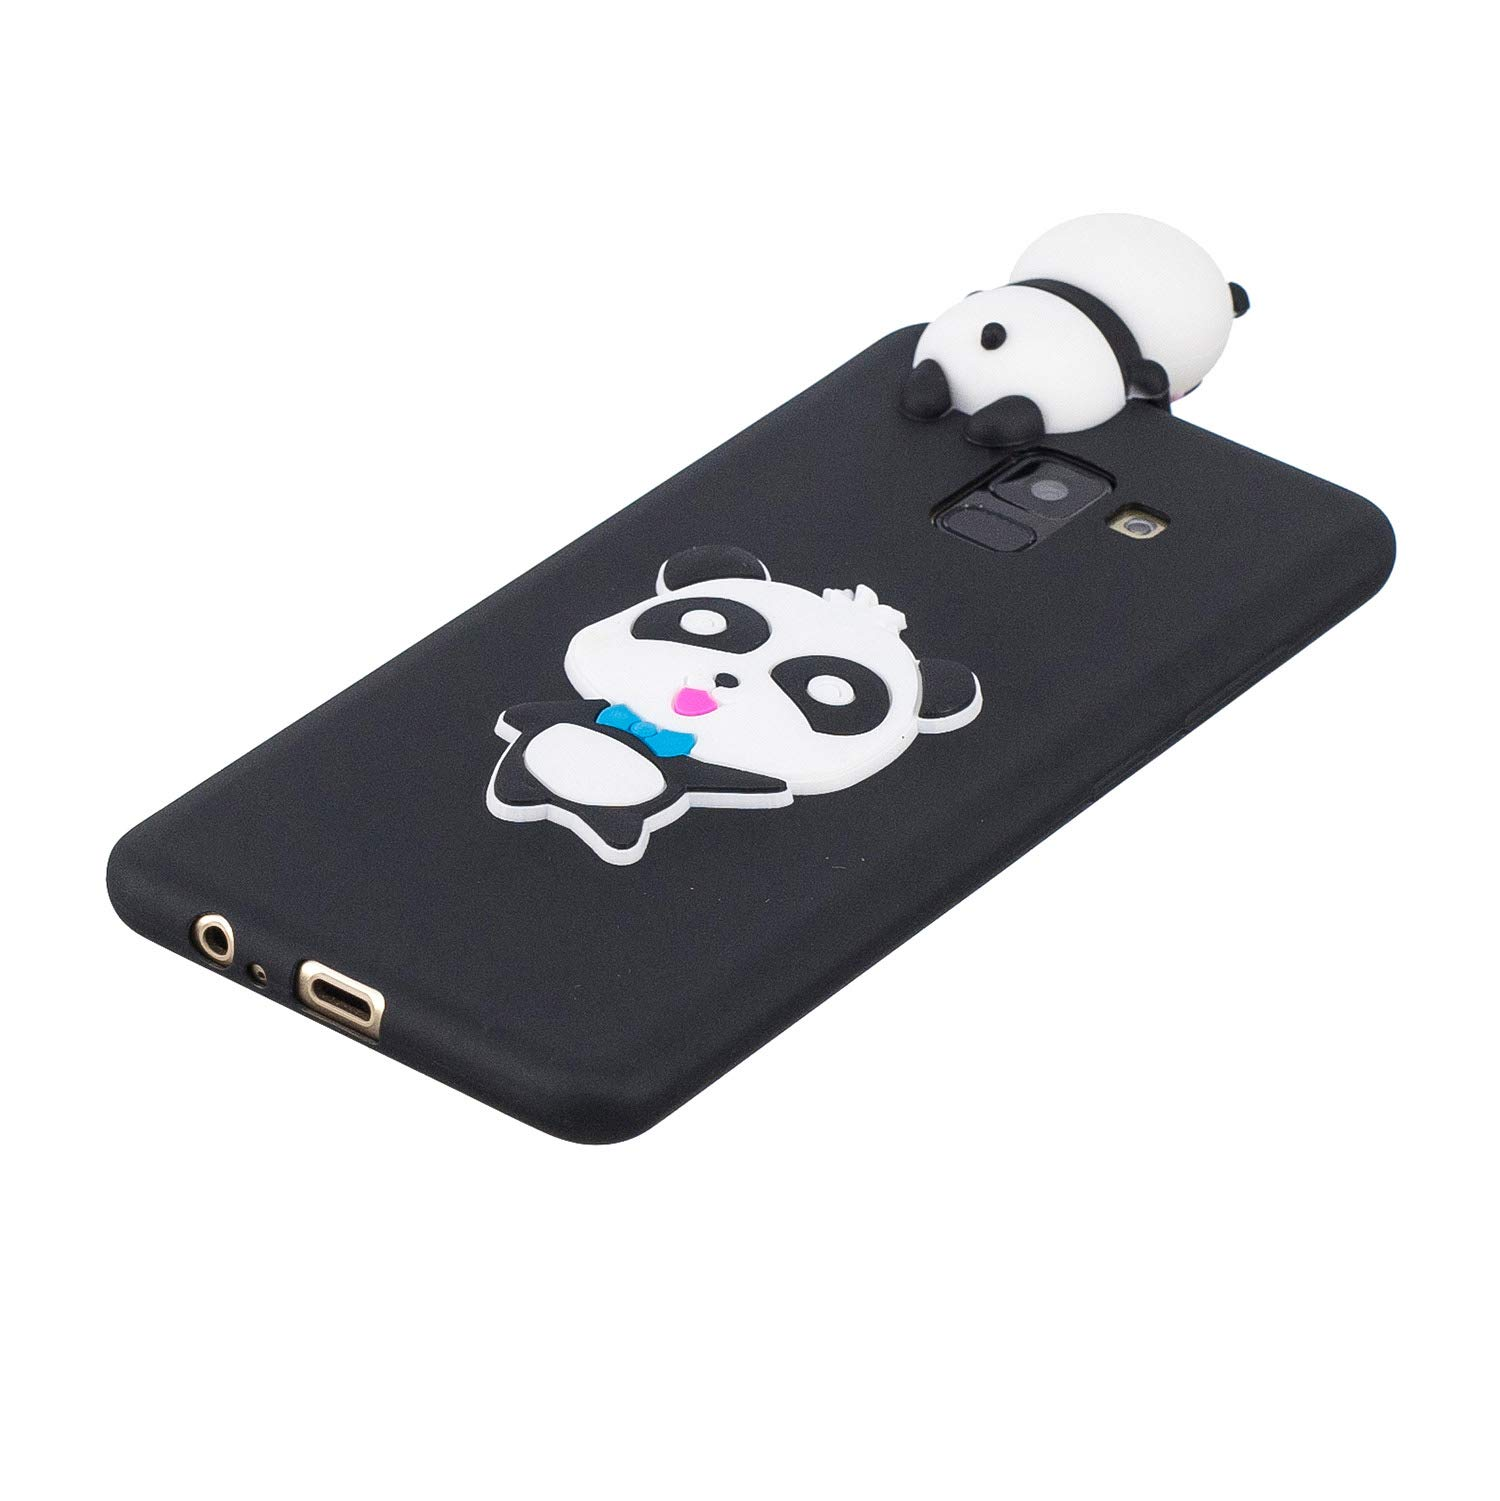 for Samsung Galaxy A8 2018 Silicone Case with Screen Protector,QFFUN 3D Cartoon [Panda] Pattern Design Soft Flexible Slim Fit Gel Rubber Cover,Shockproof Anti-Scratch Protective Case Bumper by QFFUN (Image #3)